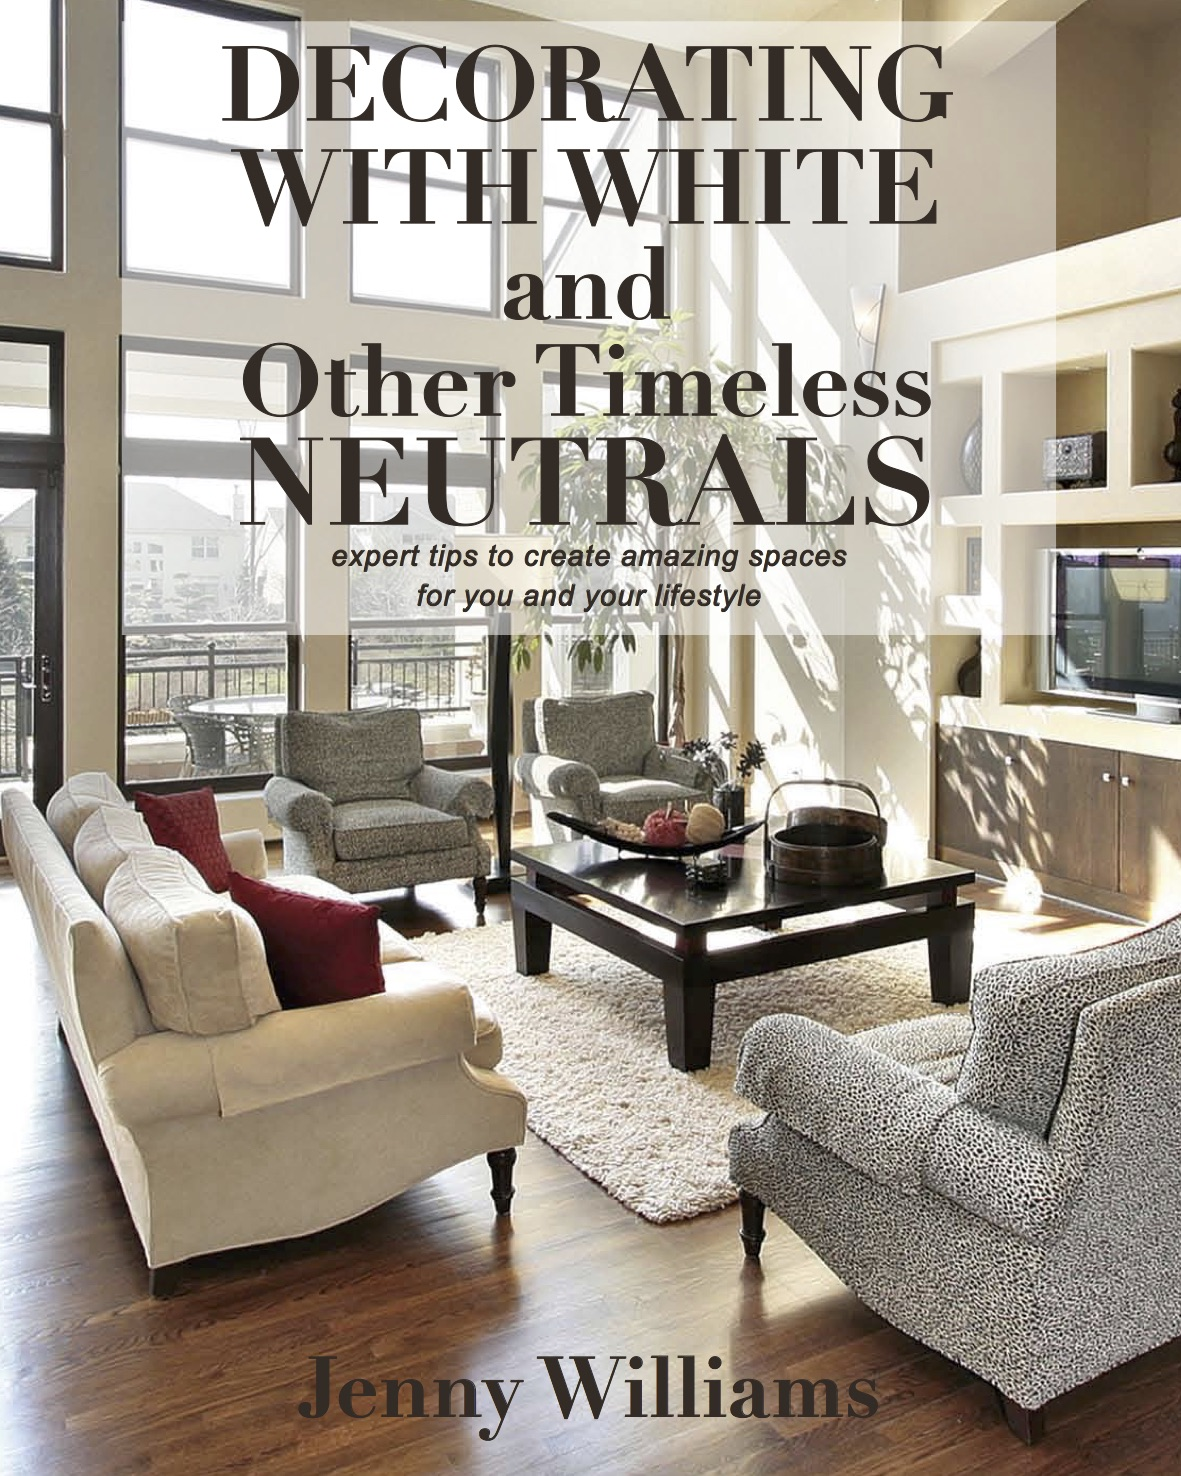 Decorating with White & Other Timeless Neutrals final cover